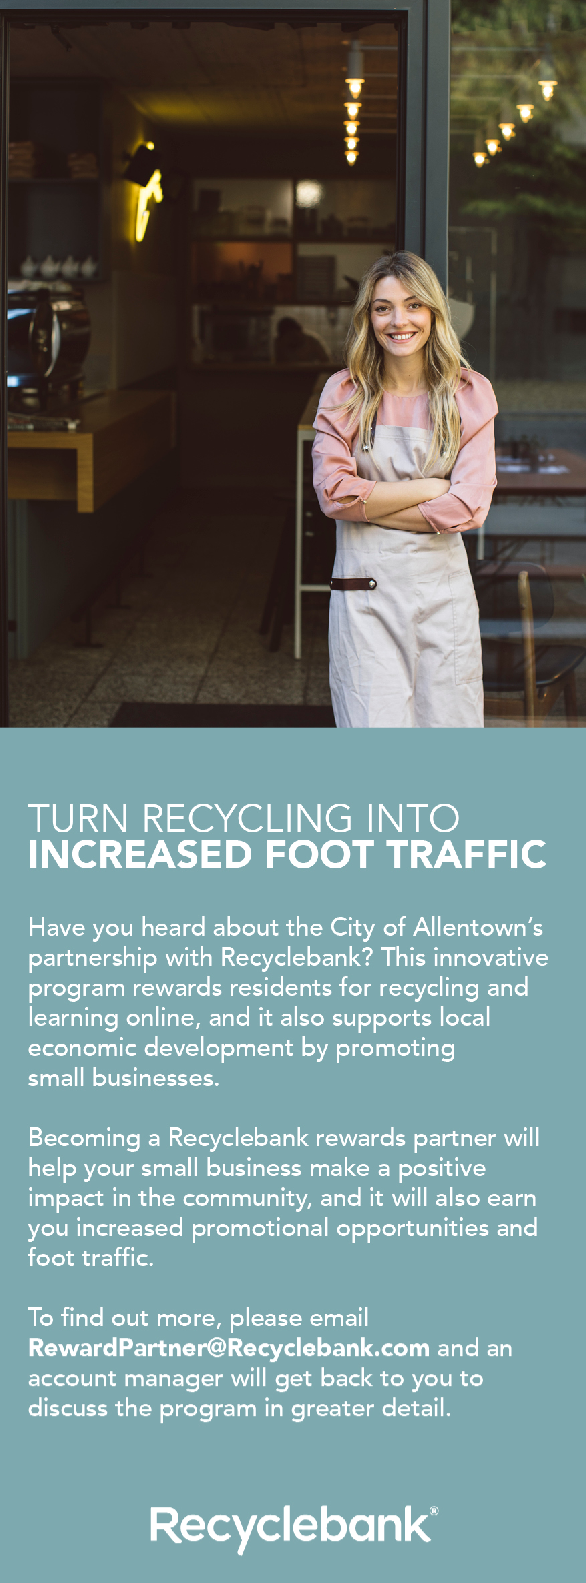 Turn Recycling into increased foot traffic. Have you heard about the City of Allentown's partnership with Recyclebank? This innovative program rewards residents for recycling and learning online, and it also supports local economic development by promoting small business. Becoming a Recyclebank rewards partner will help your small business make a positive impact in the community, and it will also earn you increased promotional opportunities and foot traffic. To find out more, please email rewardpartner@recyclebank.com and an account manager will get back to you to discuss the program in greater detail.